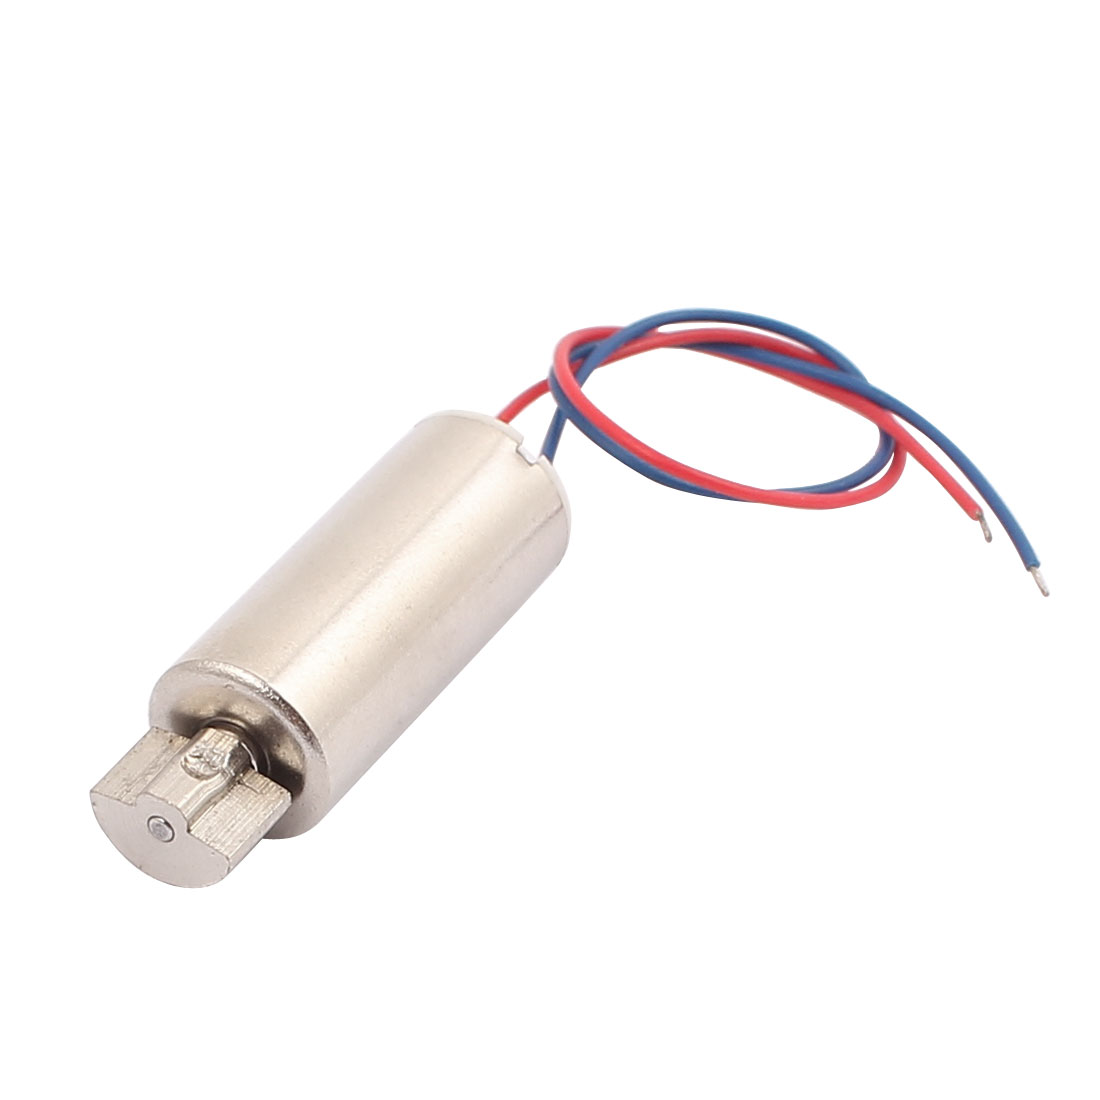 DC 1.5V-4.5V 50000RPM High Speed Vibration Motor Magnetic Coreless Motor